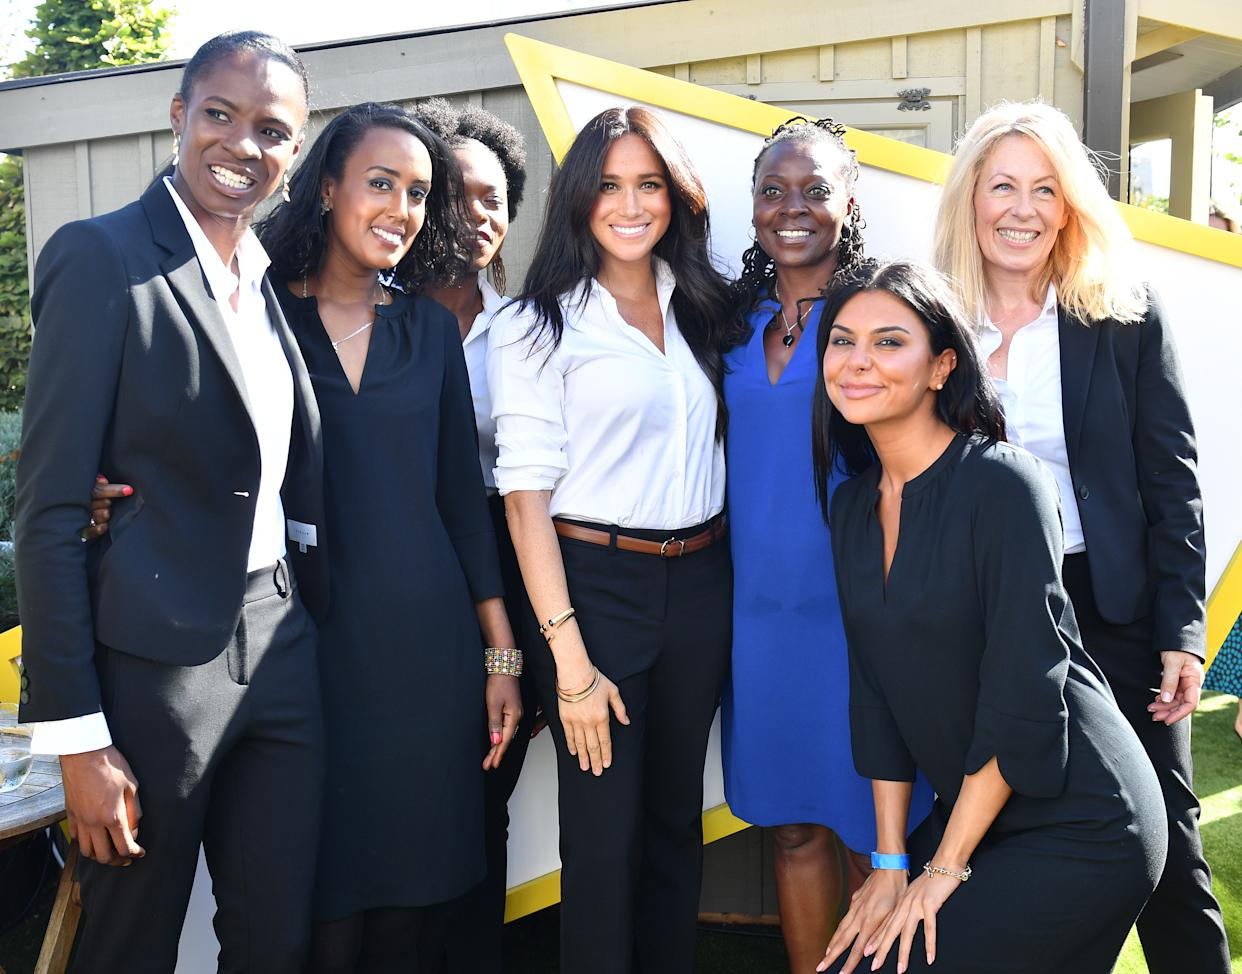 LONDON, ENGLAND - SEPTEMBER 12: Meghan, Duchess of Sussex poses for a photograph with women dressed in clothes from the Smart Works capsule collection during the collection's launch on September 12, 2019 in London, England. Created in September 2013 Smart Works exists to help unemployed women regain the confidence they need to succeed at job interviews and return to employment. (Photo by Mark Large - WPA Pool/Getty Images)